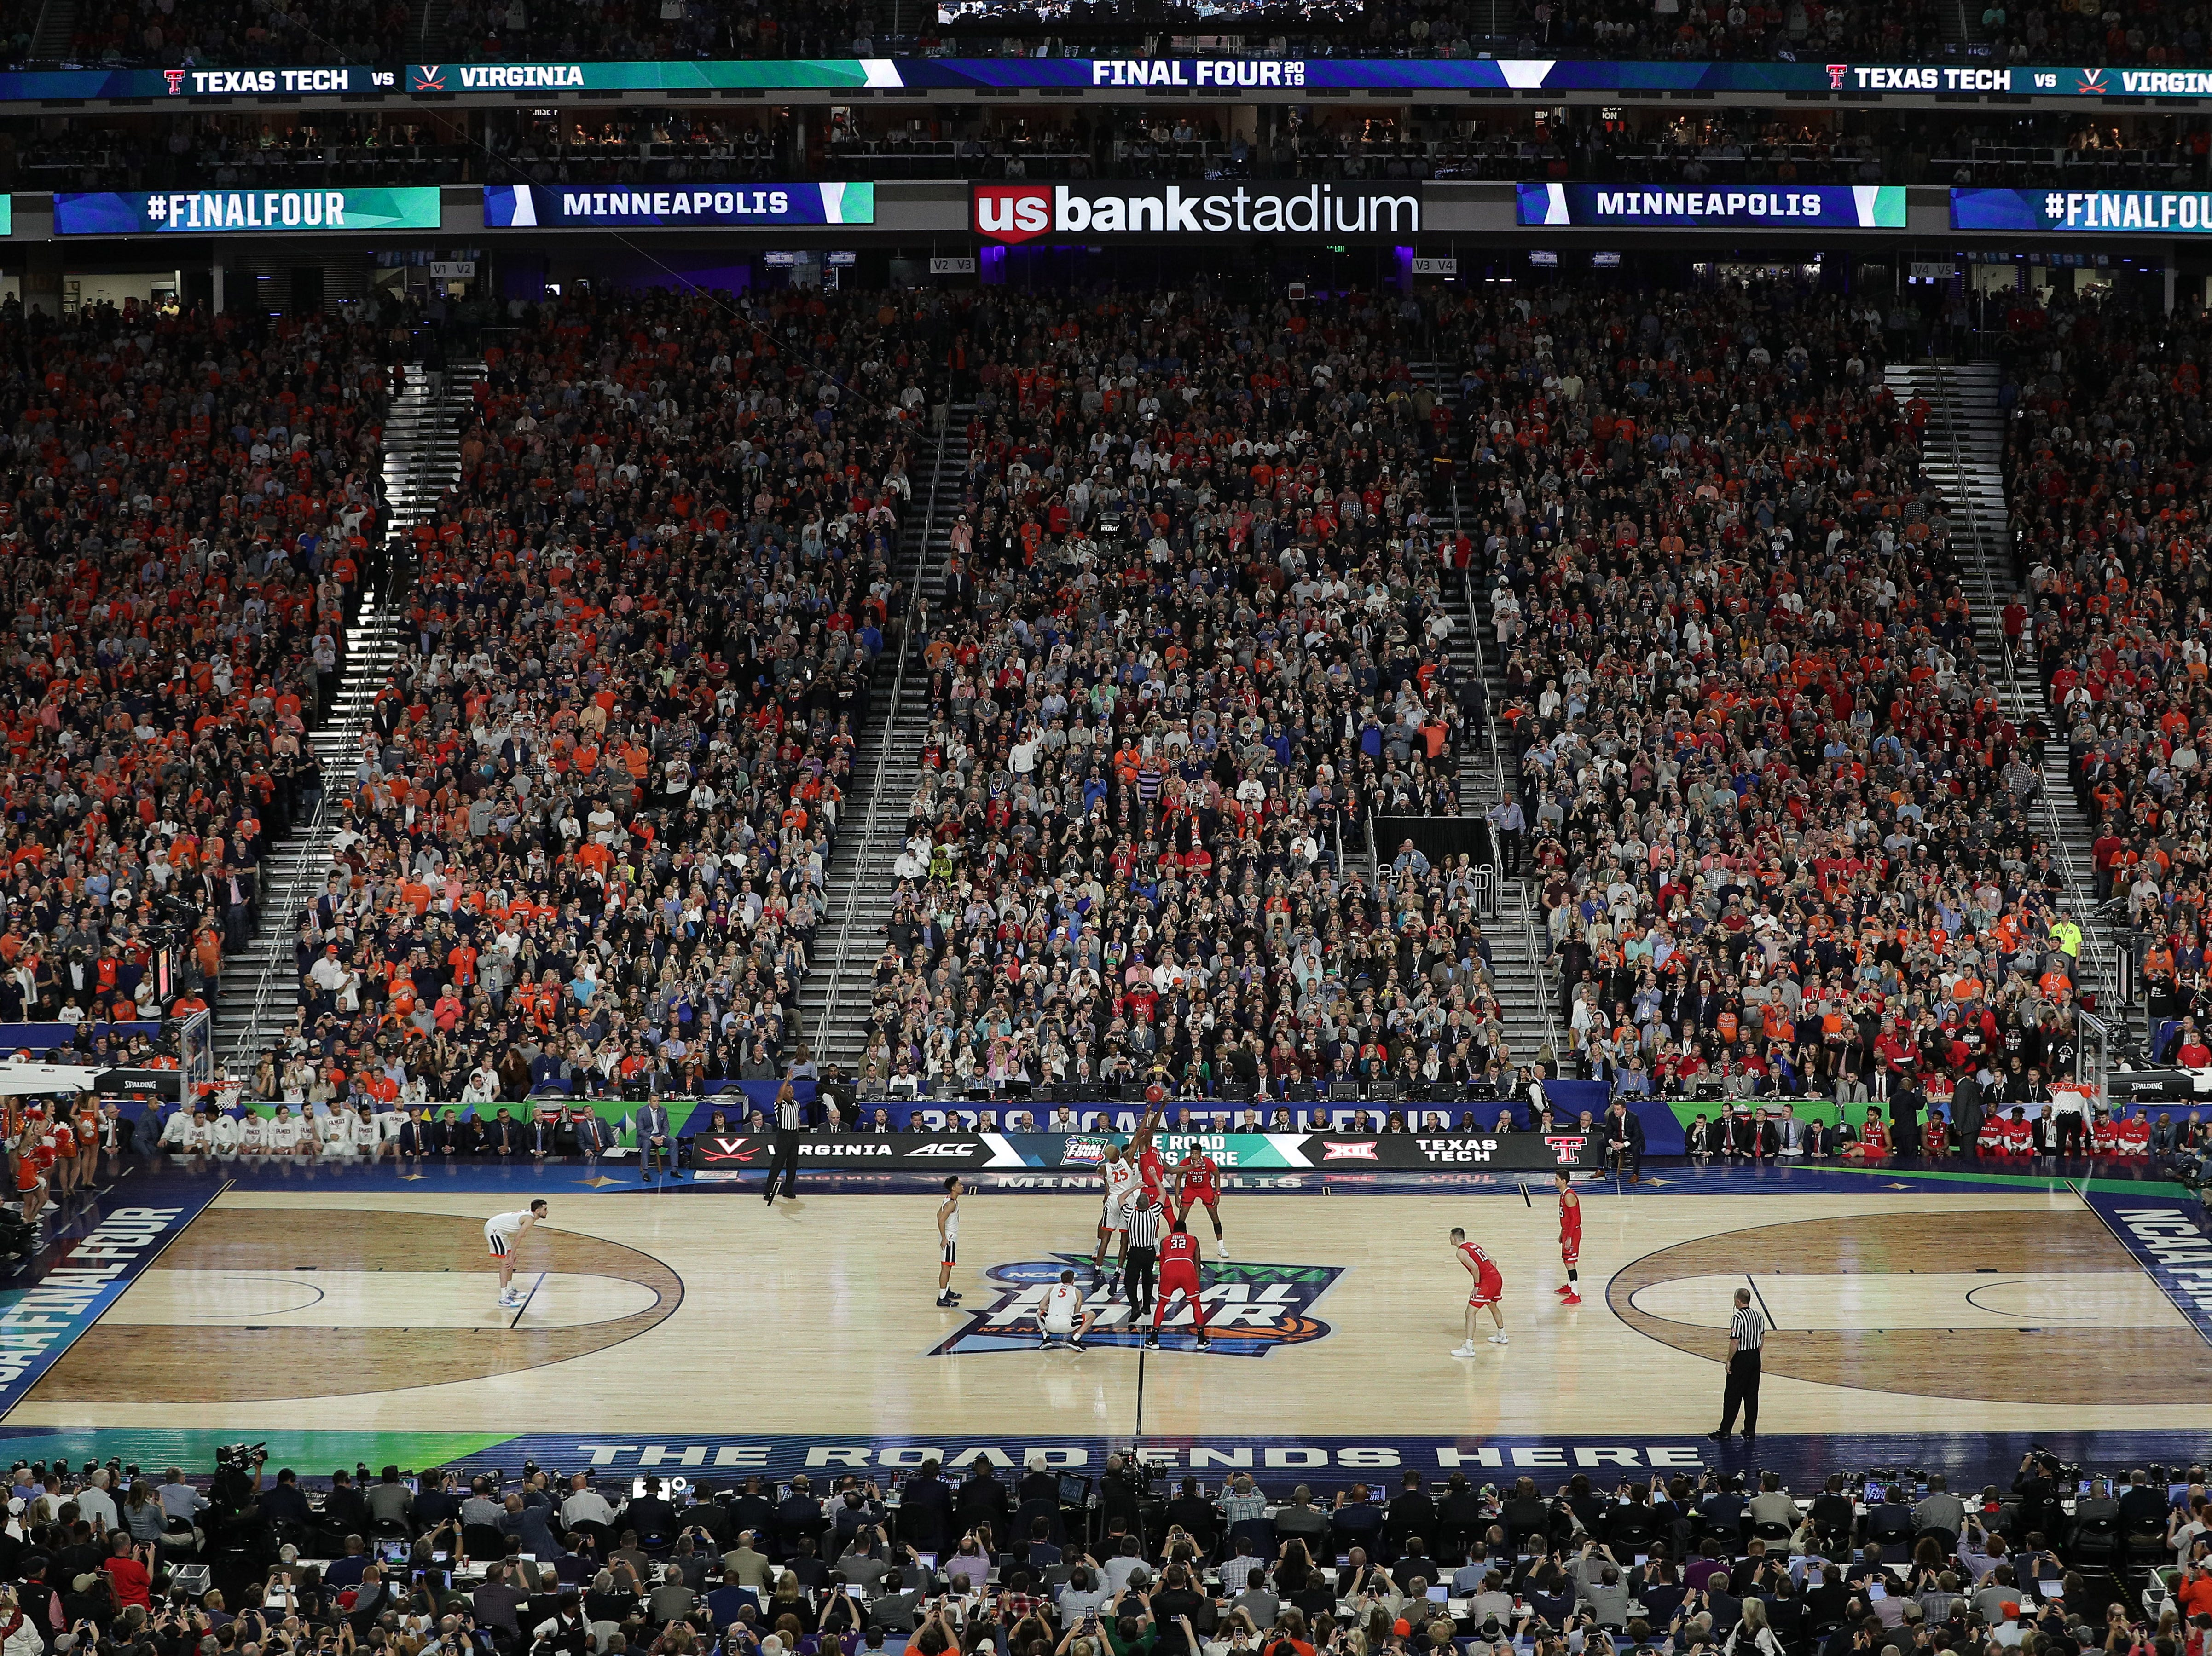 Apr 8, 2019; Minneapolis, MN, USA; The ball is tipped off in the championship game of the 2019 men's Final Four between the Virginia Cavaliers and the Texas Tech Red Raiders at US Bank Stadium. Mandatory Credit: Brace Hemmelgarn-USA TODAY Sports